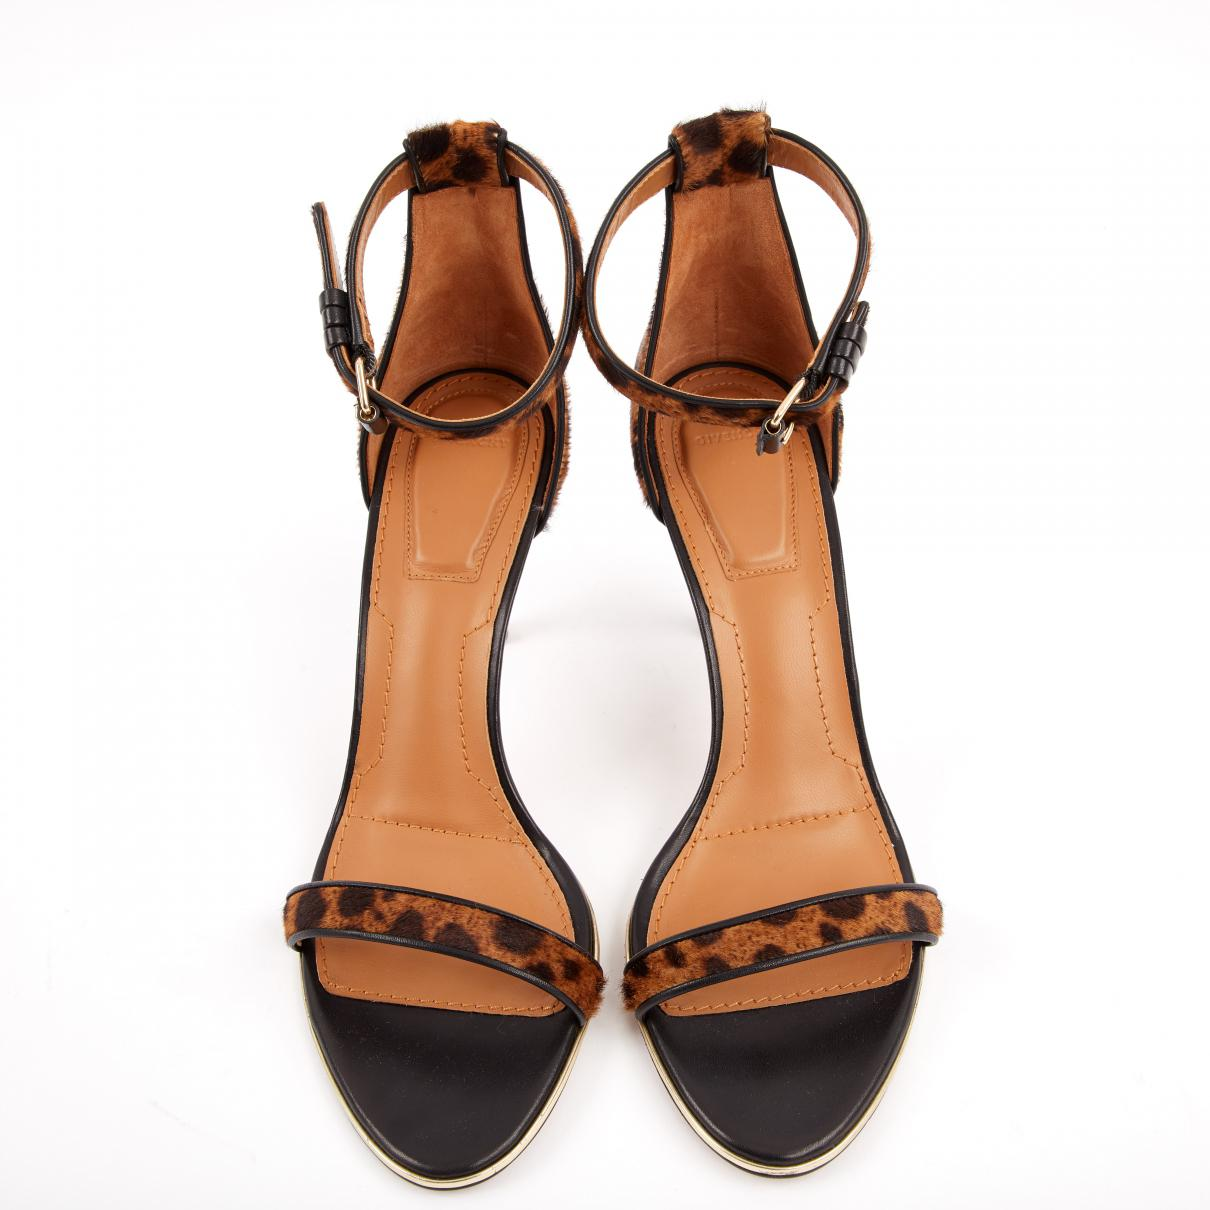 Pre-owned - Pony-style calfskin sandal Givenchy Uejlxak